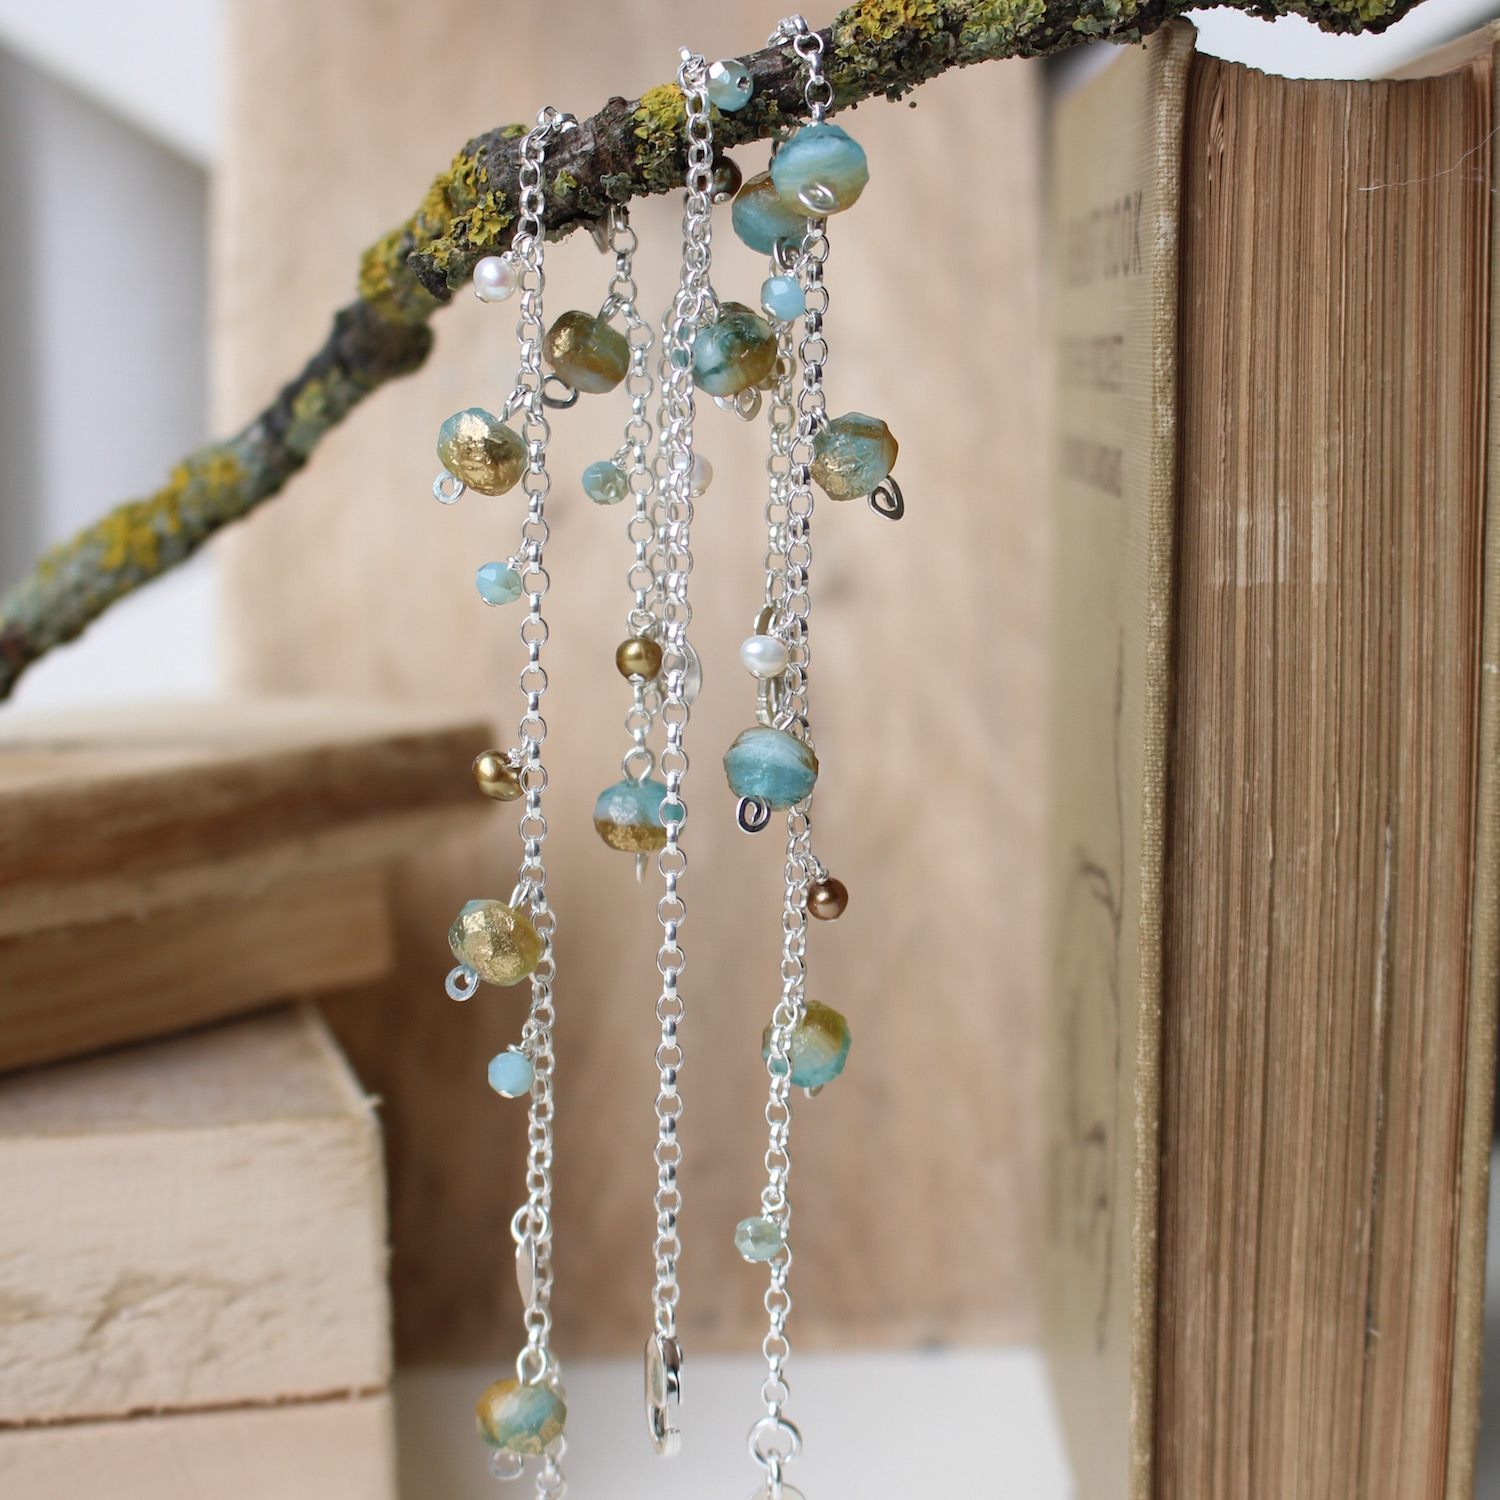 Soft Blue and Gold drops on Sterling silver with pearls. By Nina Parker